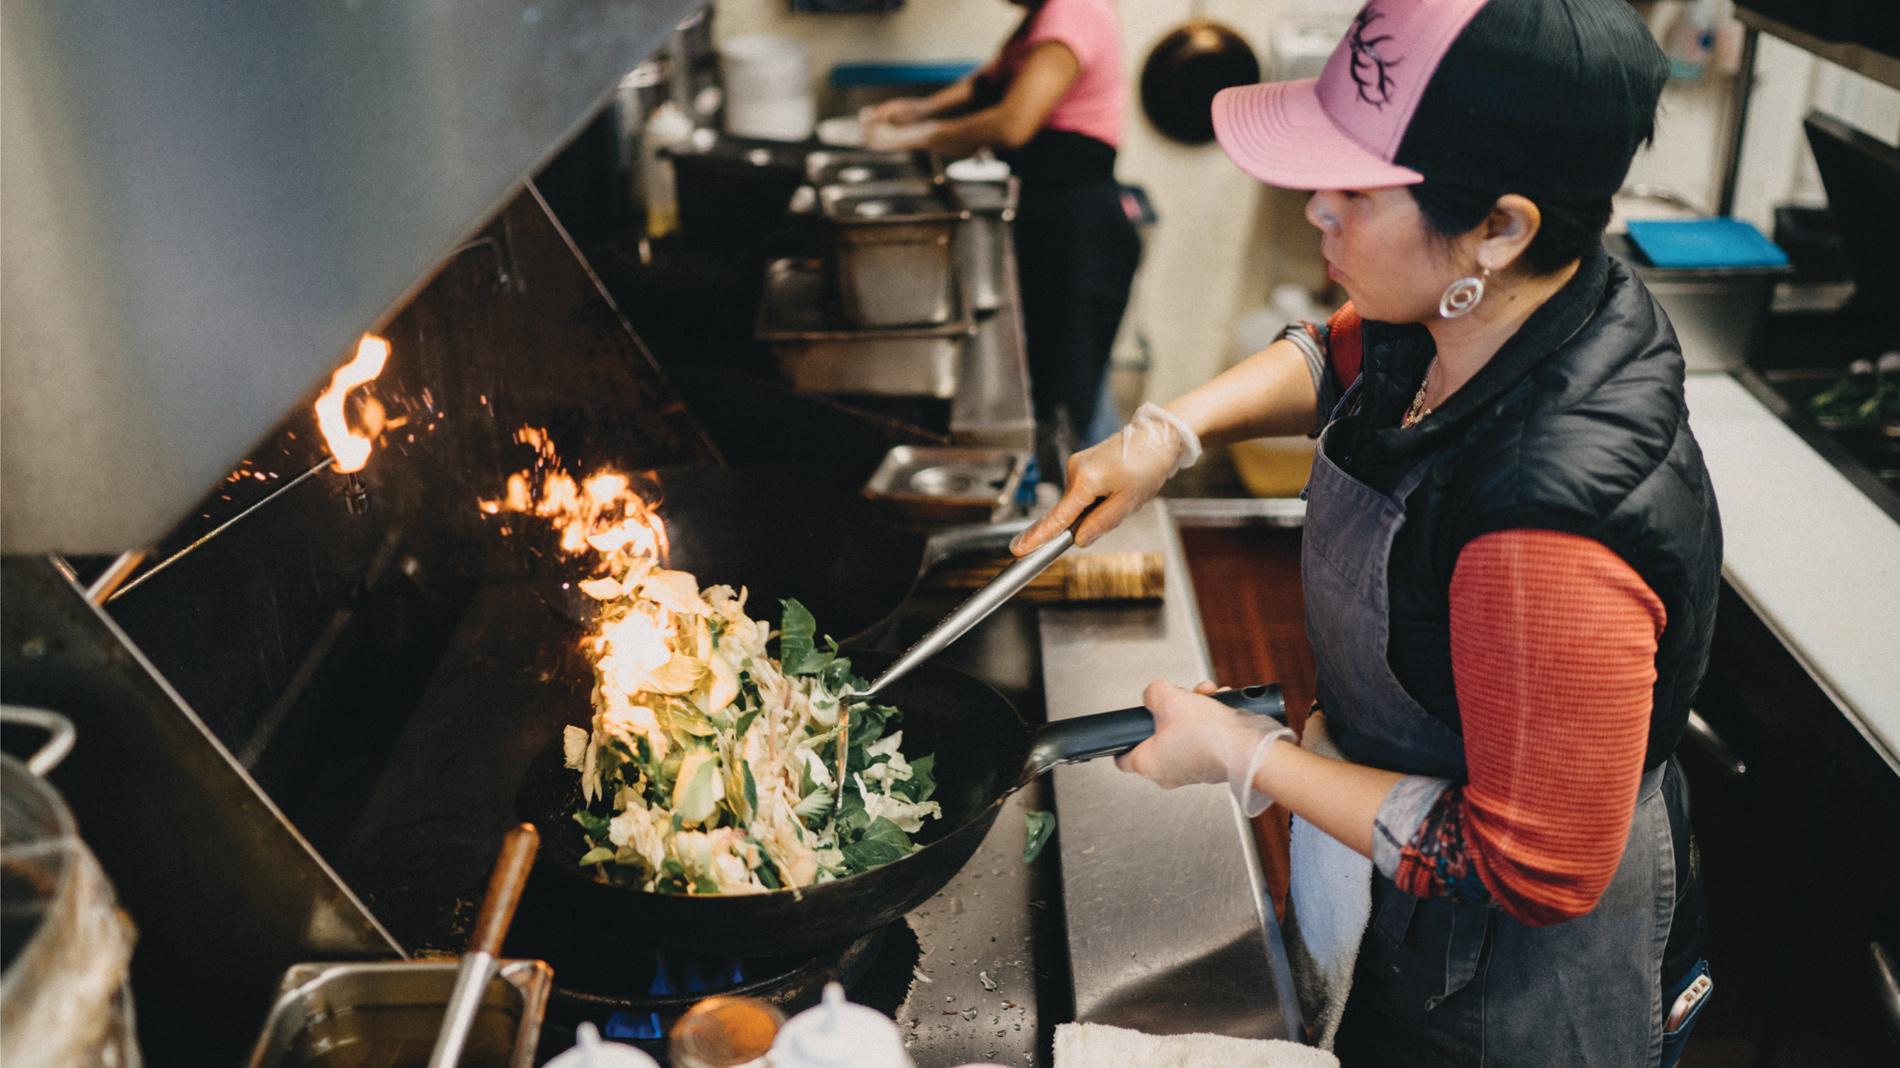 lona's lil eats chef-owner lona luo cooks with a wok at her st. louis restaurant